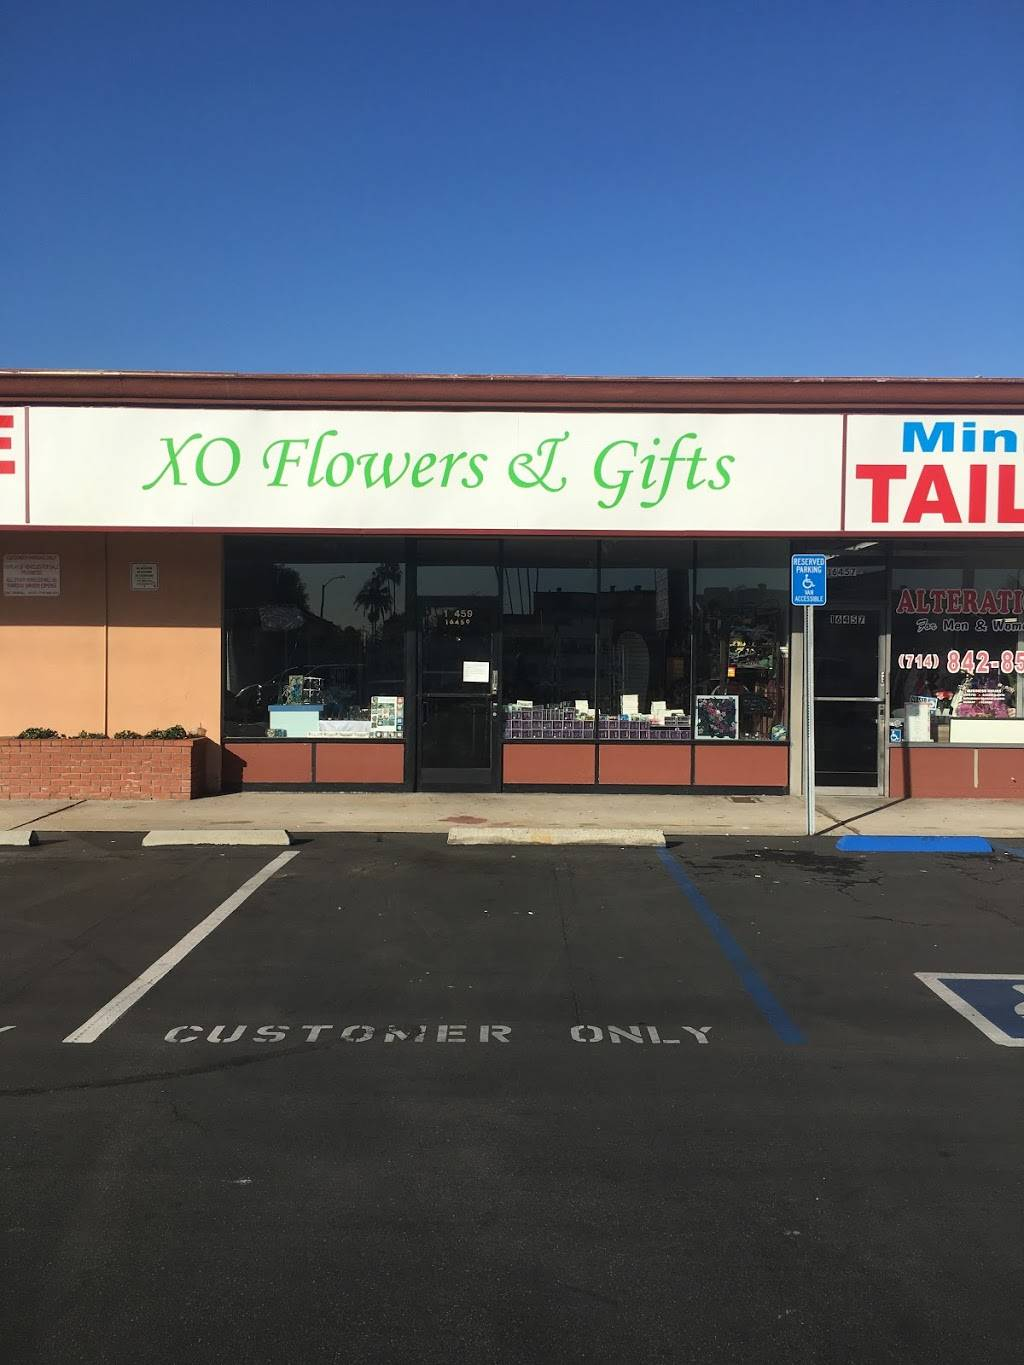 XO Flowers & Gifts - florist  | Photo 7 of 7 | Address: 16459 Magnolia St, Westminster, CA 92683, USA | Phone: (714) 585-2275